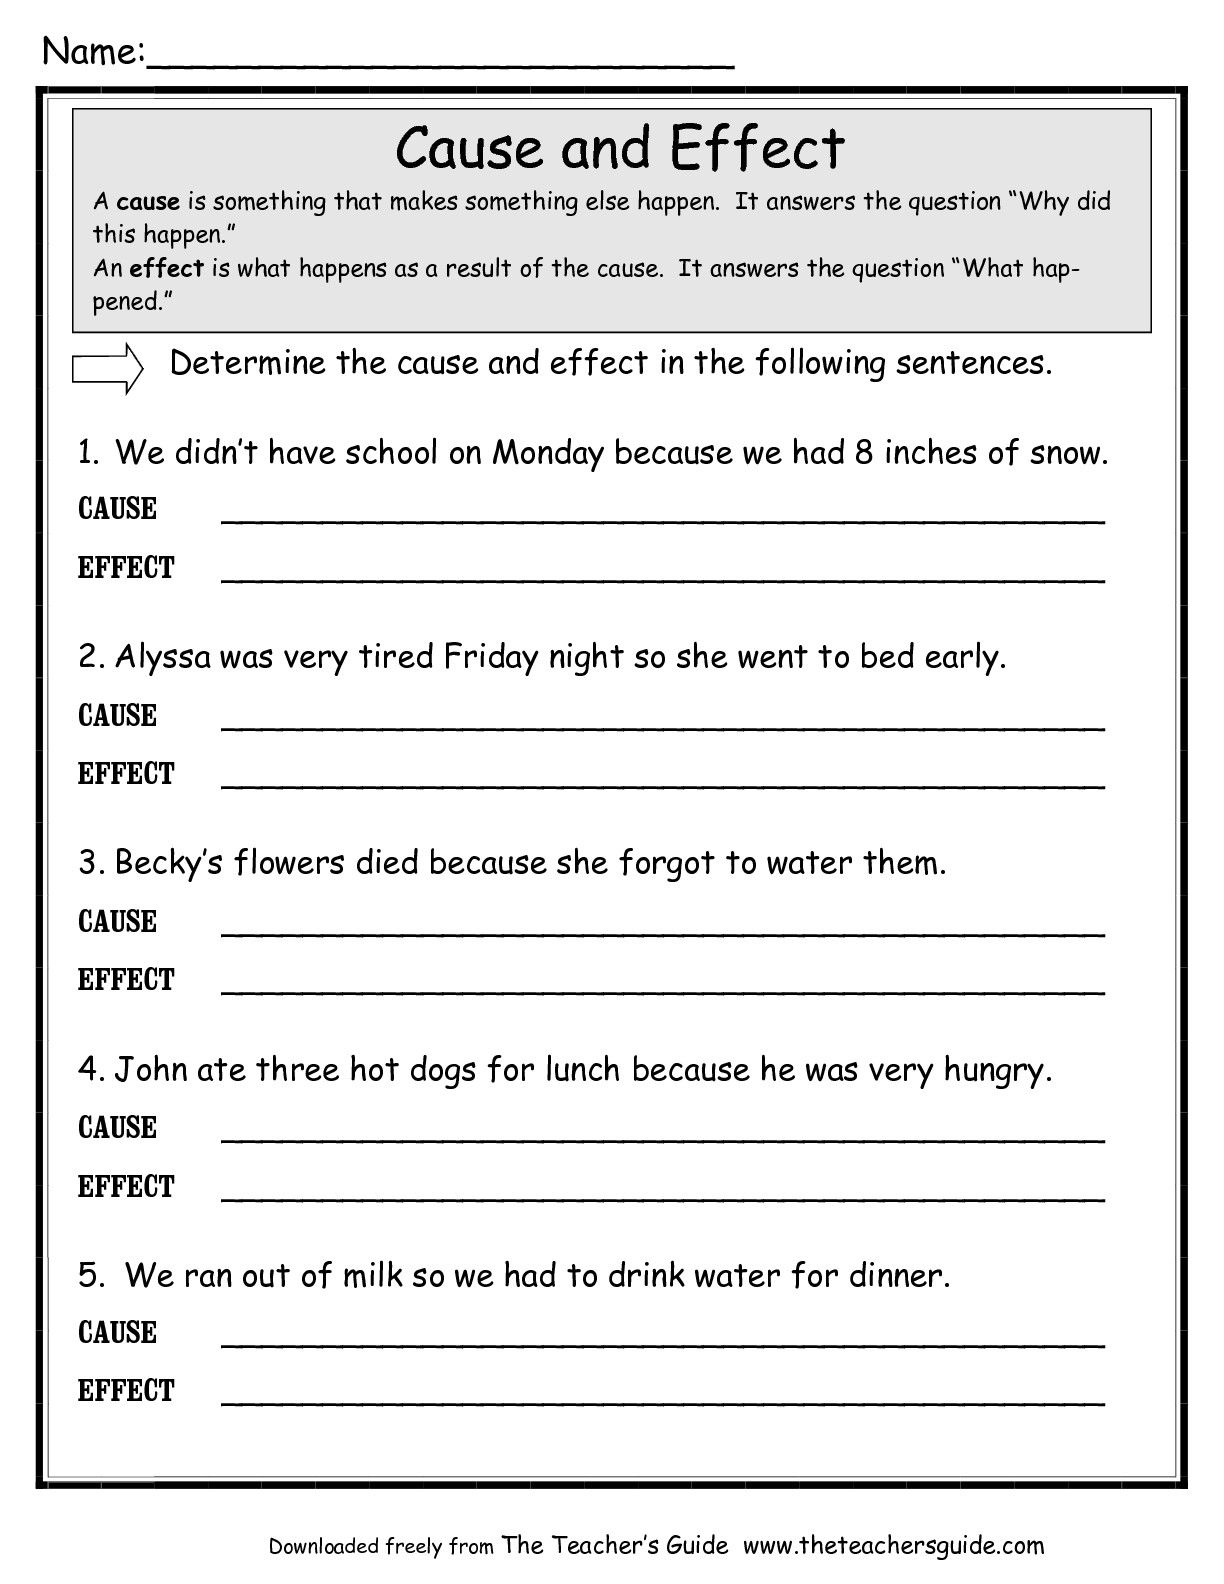 Cause And Effect Worksheets - Google Search | Education | Cause | Free Printable Cause And Effect Worksheets For Third Grade